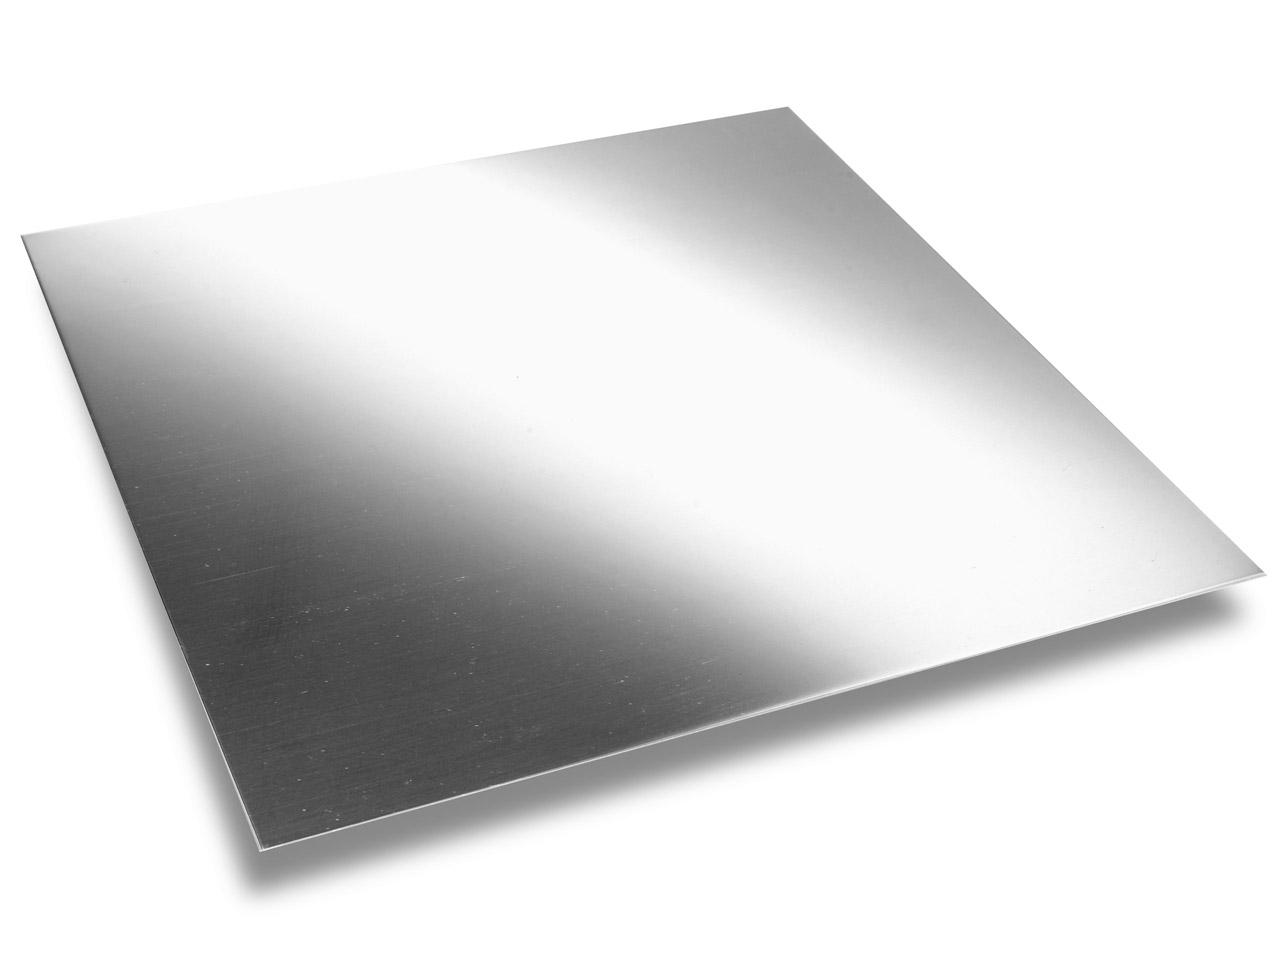 Britannia Silver Sheet 1.65mm Fully Annealed Soft